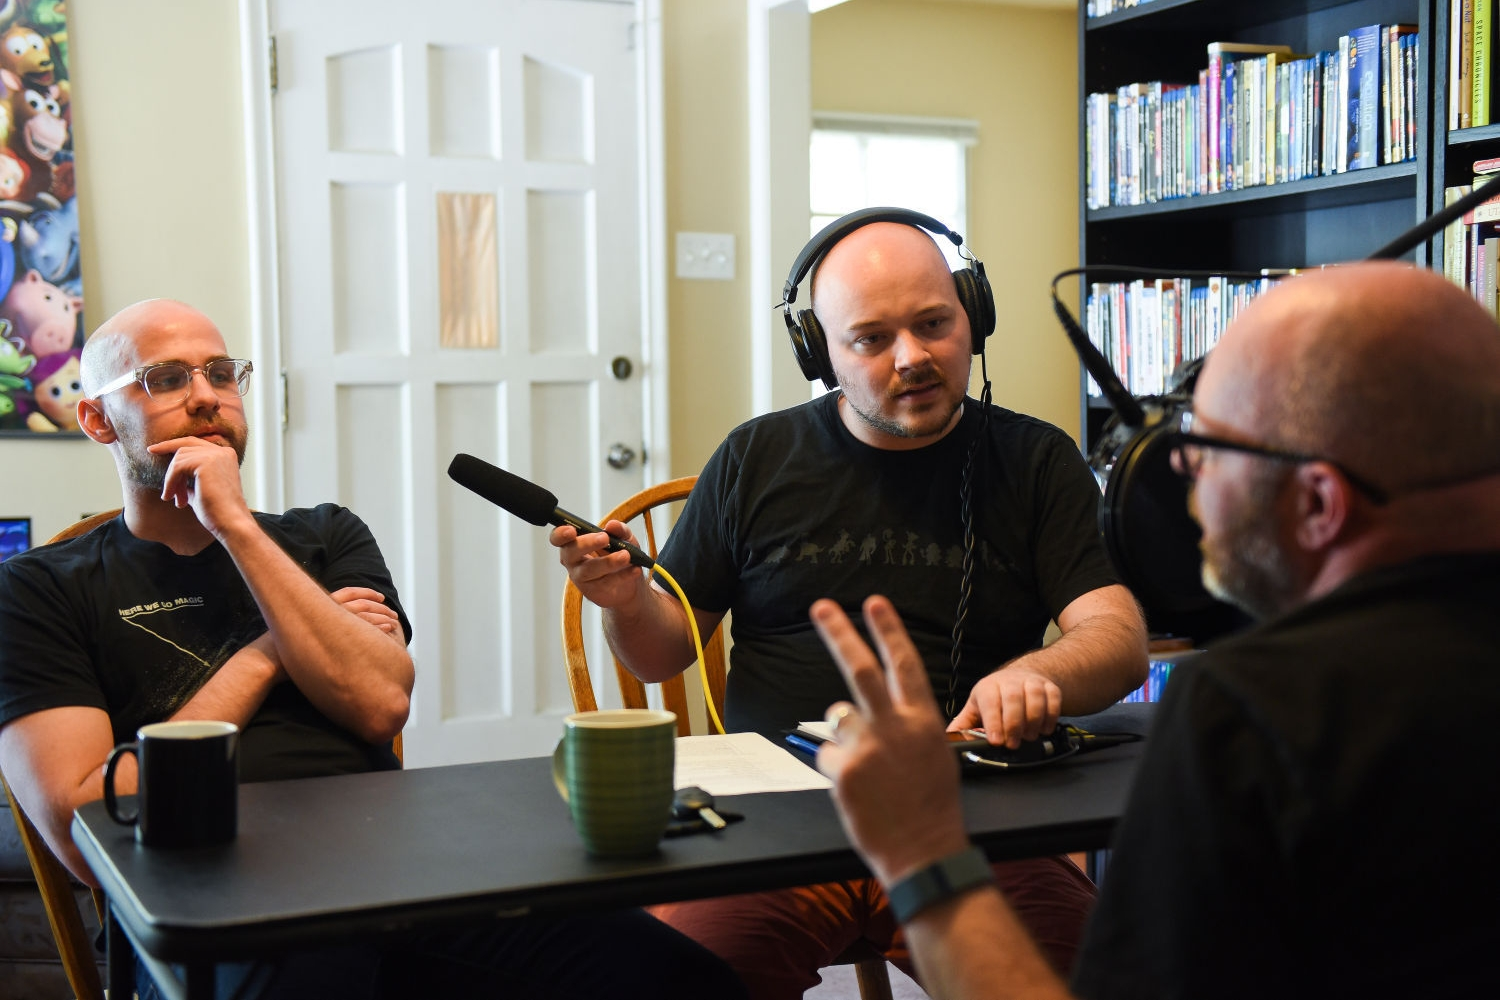 Recording an episode of What Say Ye? with colleague Court Mann (left) and guest Justin Hackworth in 2016.